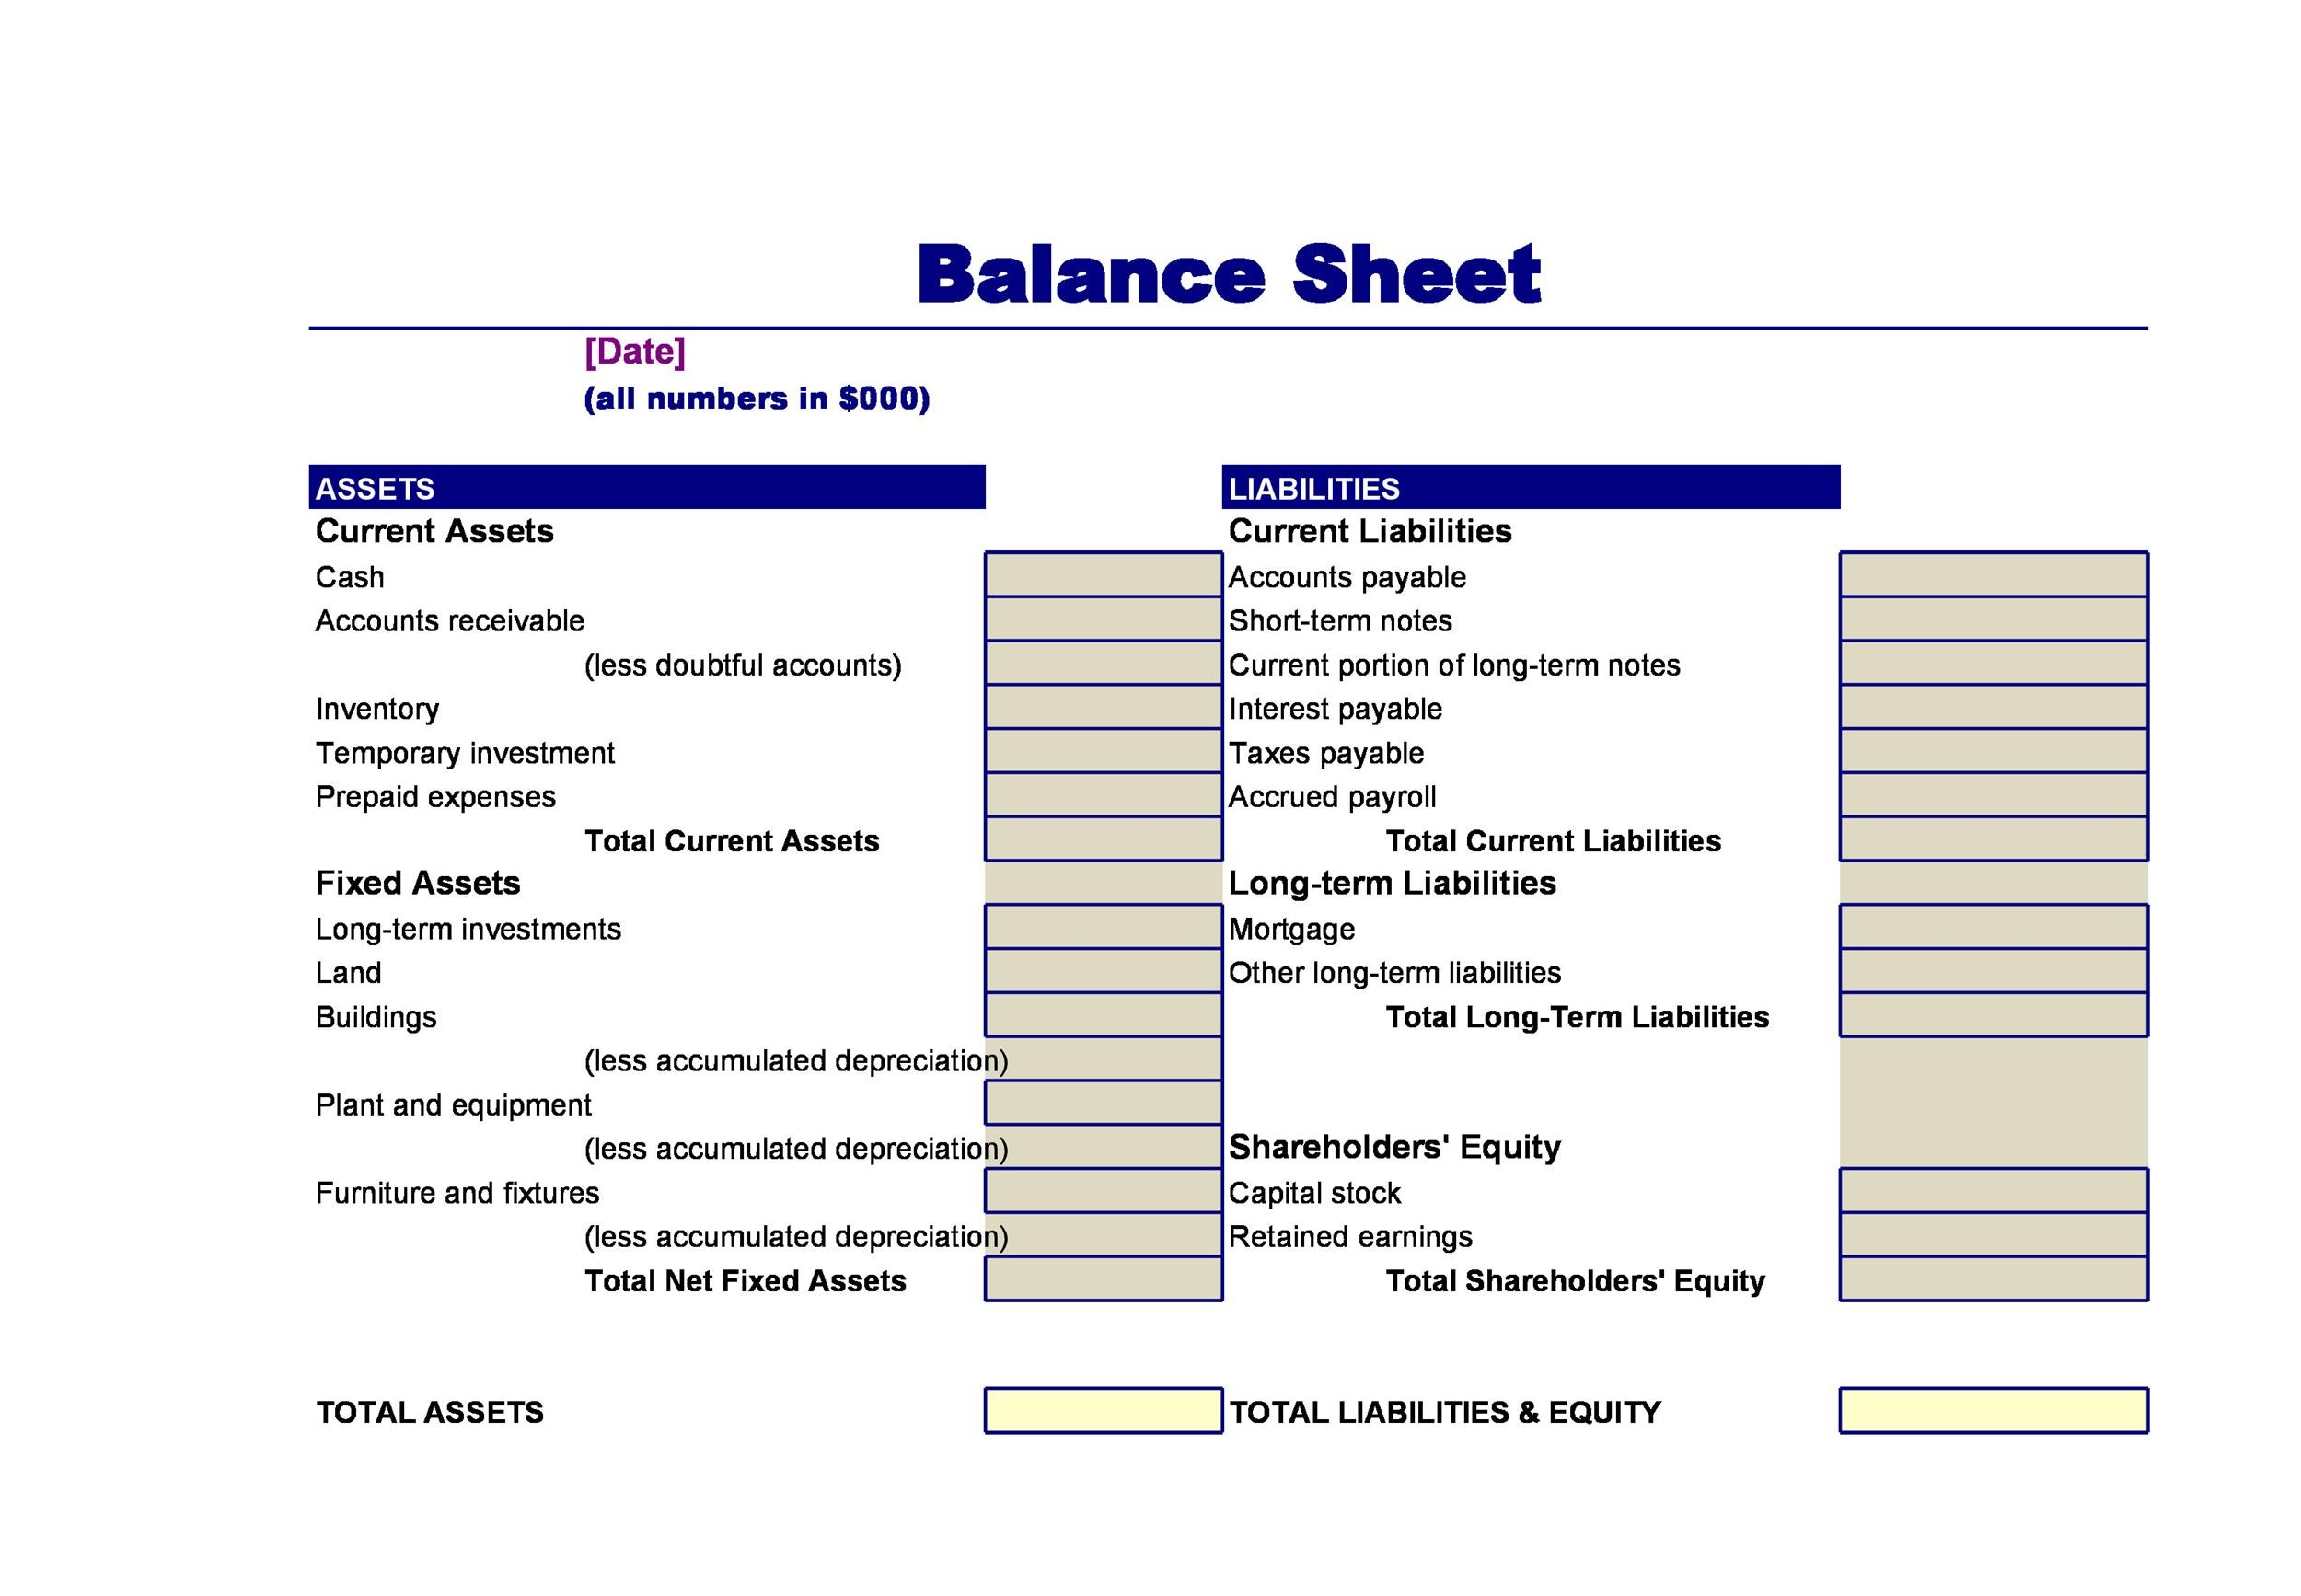 38 free balance sheet templates examples template lab